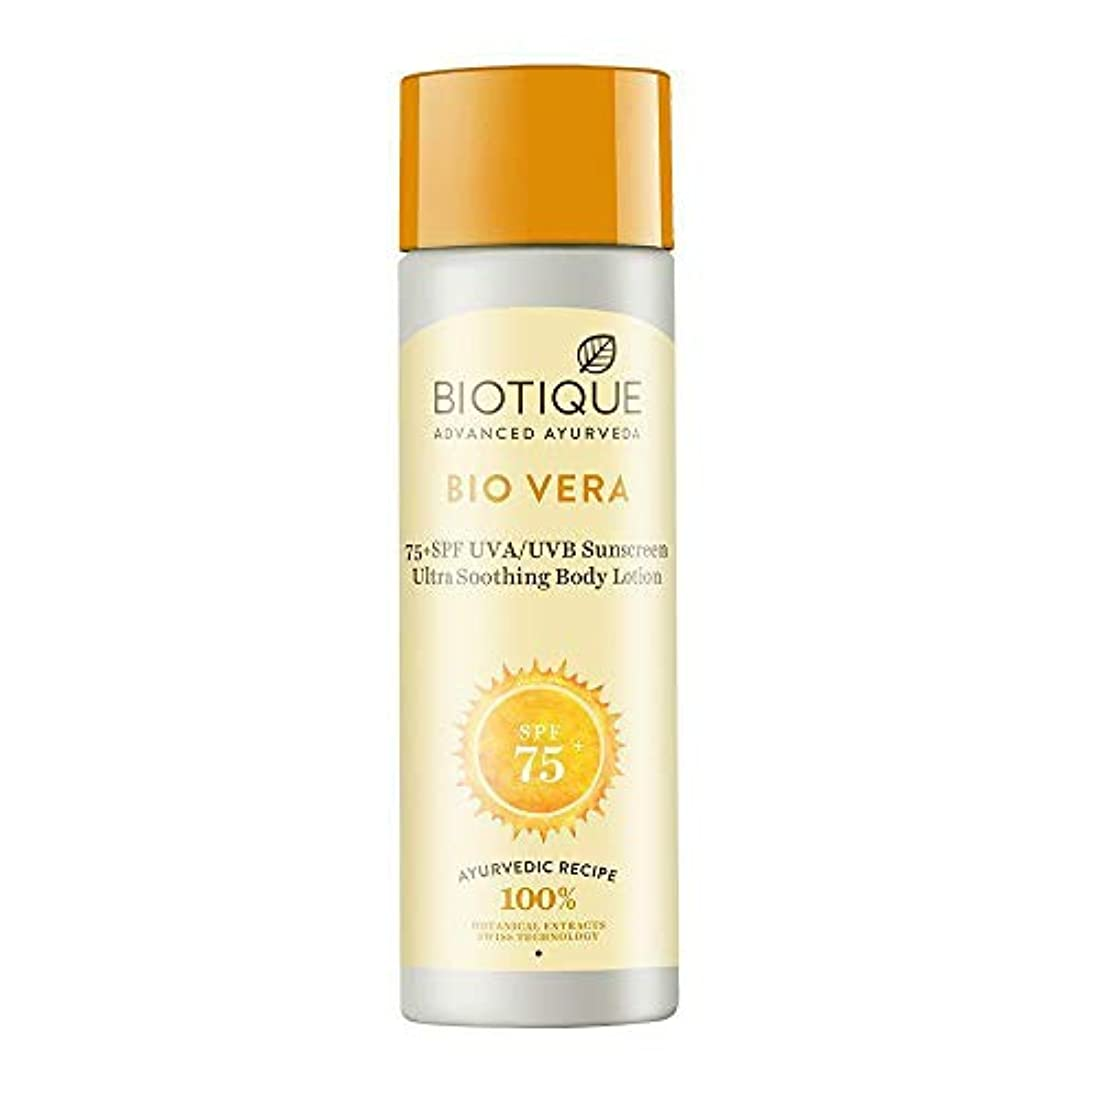 BIOTIQUE BIO VERA SPF 75+ UVA/UVB SUNSCREEN ULTRA SOOTHING LOTION - 190ml BIOTIQUE BIO VERA SPF 75+ UVA/UVBサンスクリーンウルトラソーティングローション